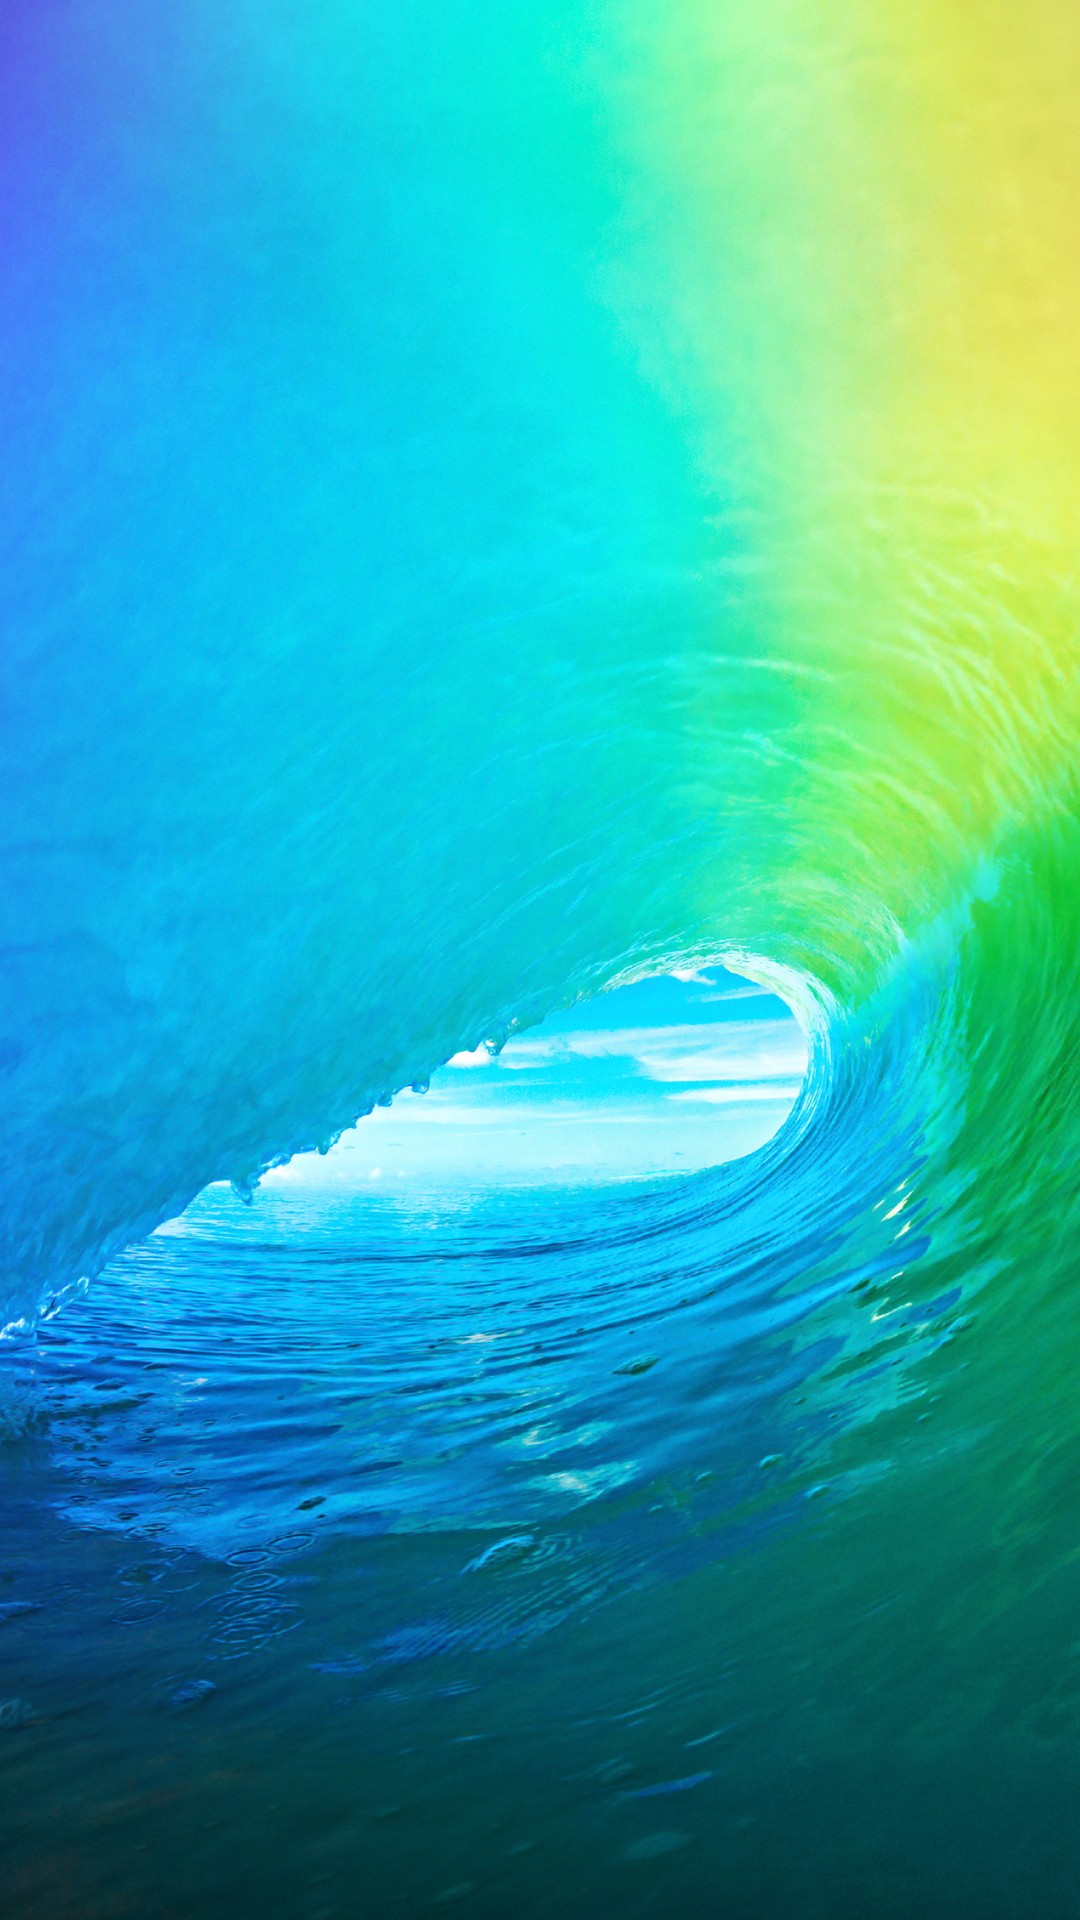 Wave wallpaper download free high resolution wallpapers for desktop mobile laptop in any - Wave pics wallpaper ...